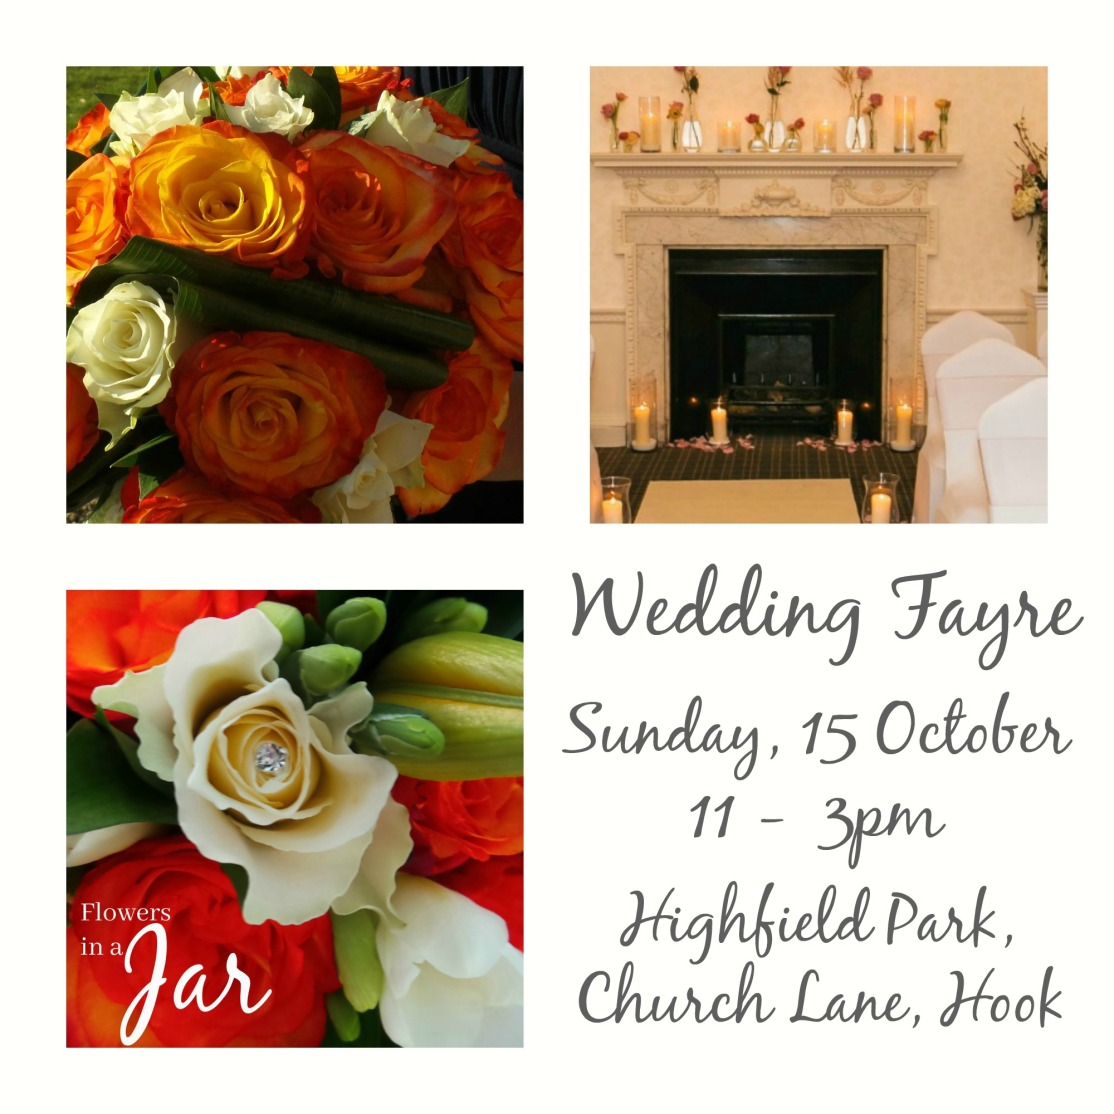 wedding-fayre-flowers-in-a-jar-collage-wedding-fair